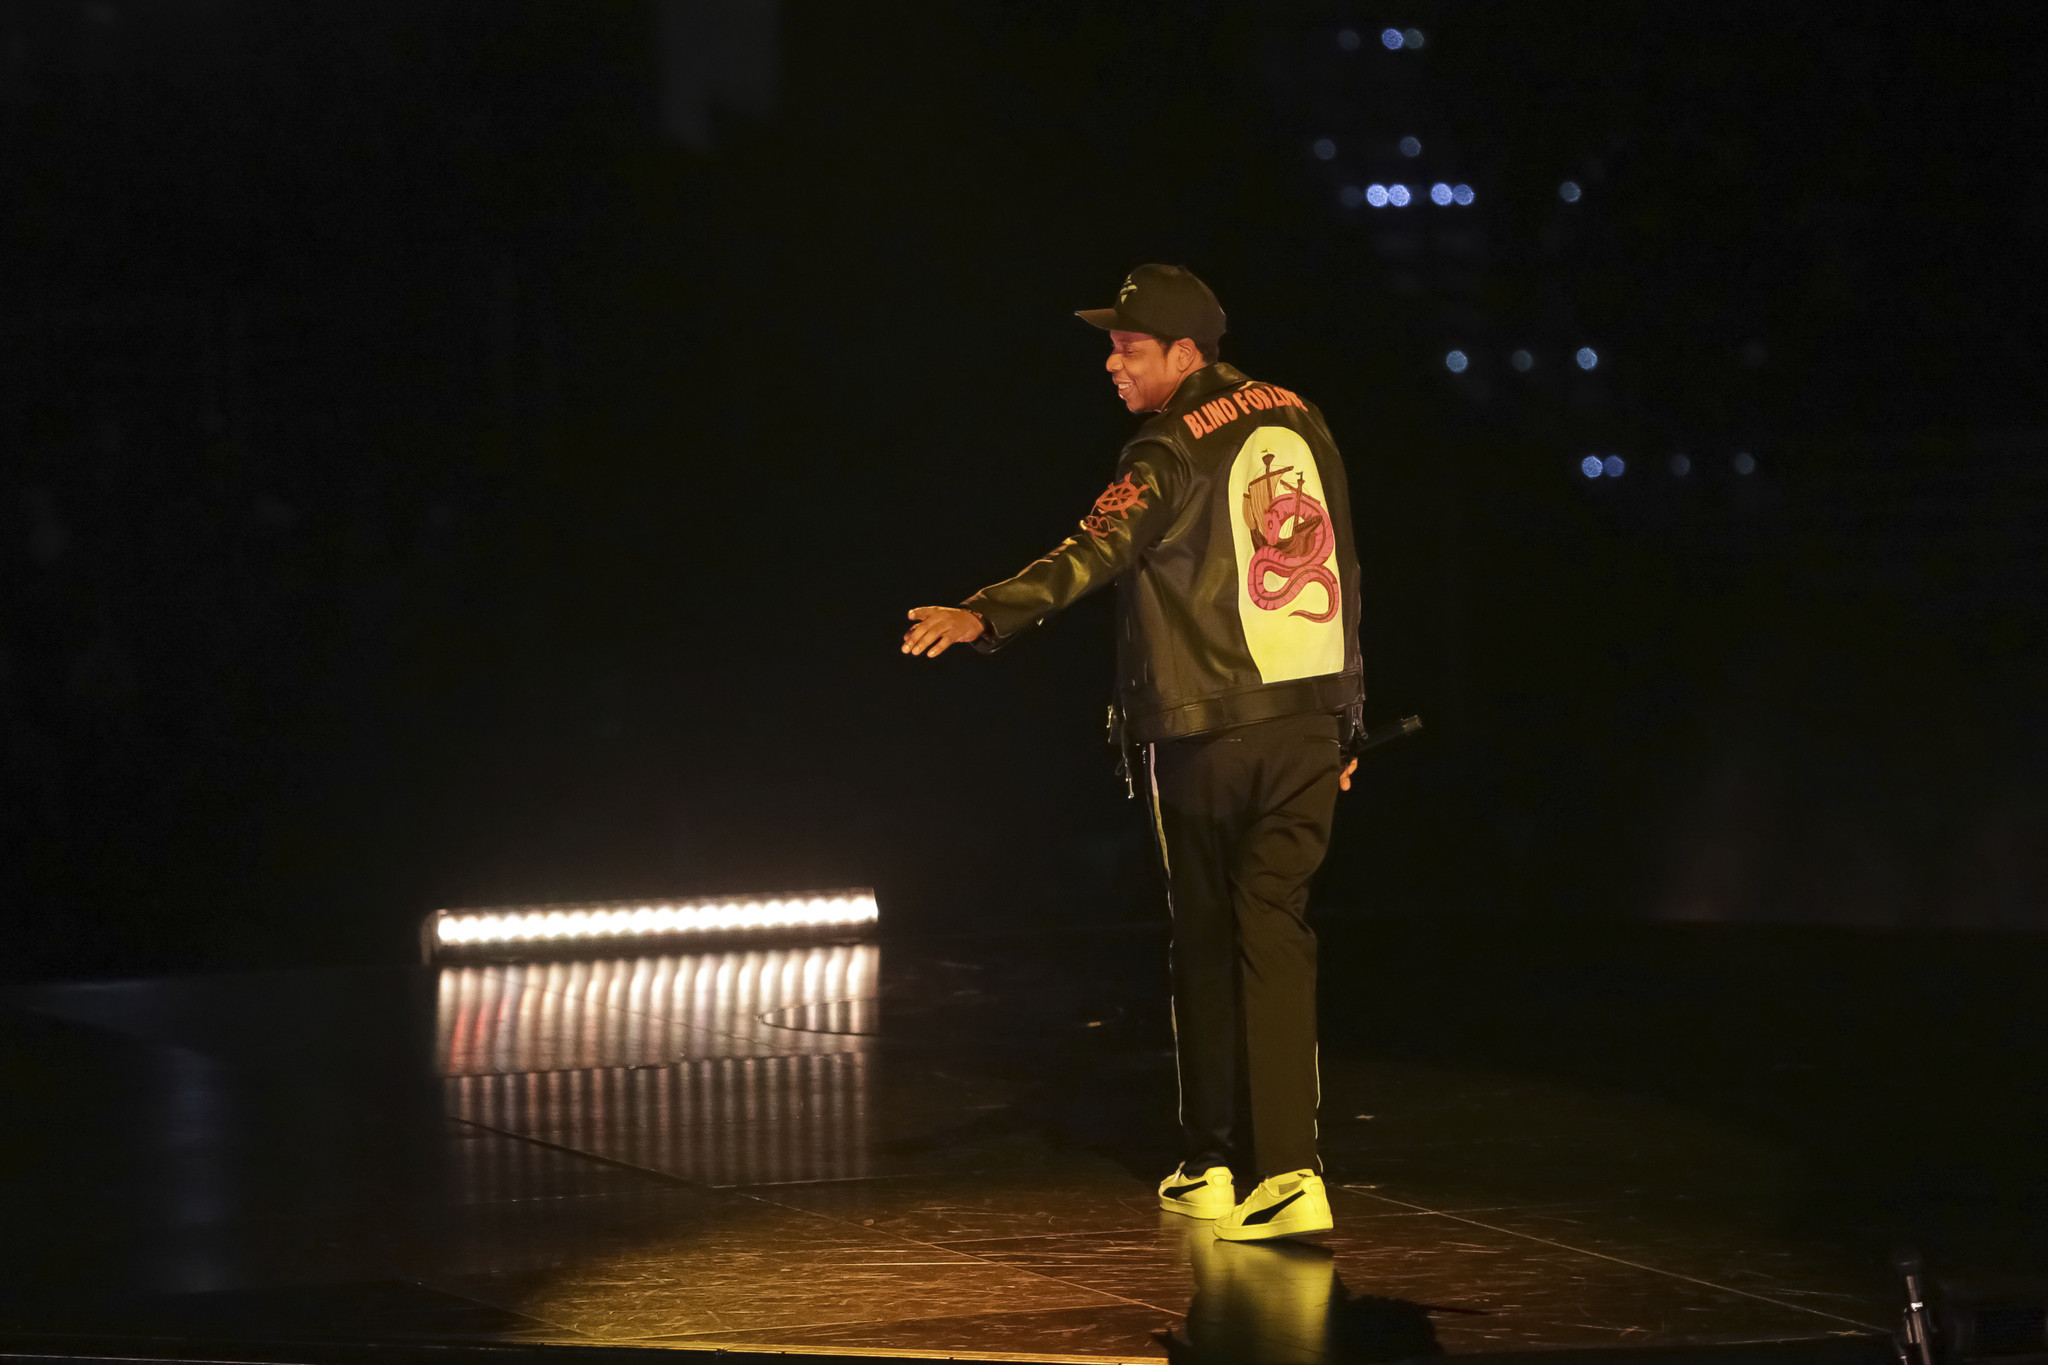 366e94f87 On his 4:44 Tour, Jay-Z, wearing a Gucci jacket, performs onstage at  Capital One Arena on Nov. 29, 2017, in Washington, D.C. Brent N. Clarke /  Invision / AP